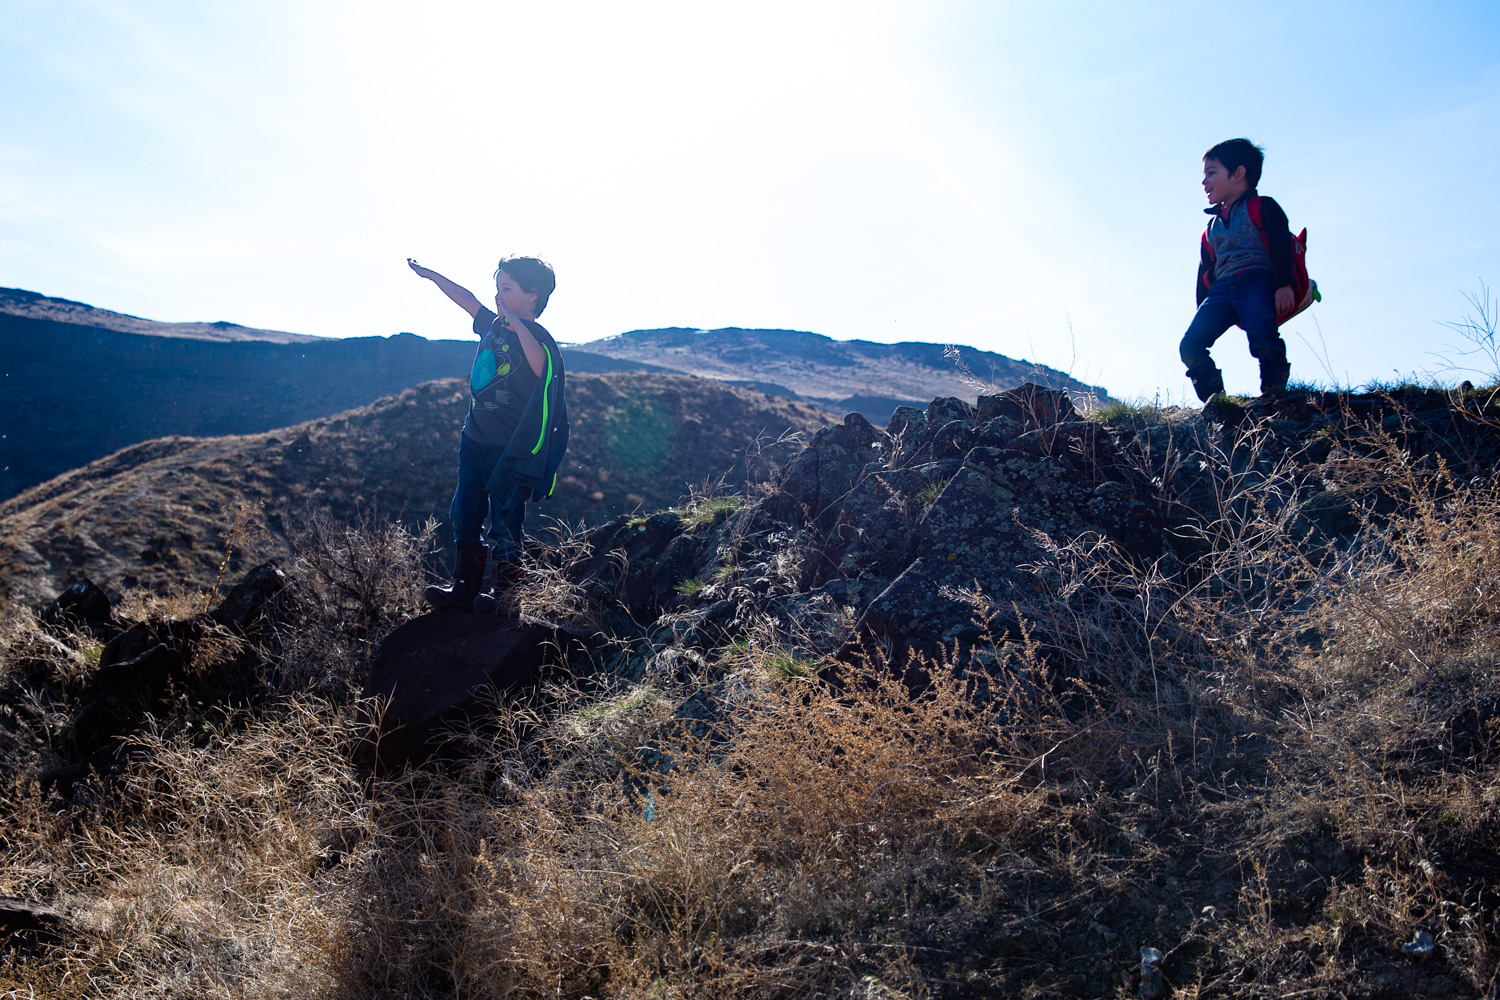 Two boys climbing on rocks as one boy acts like Superman at the top